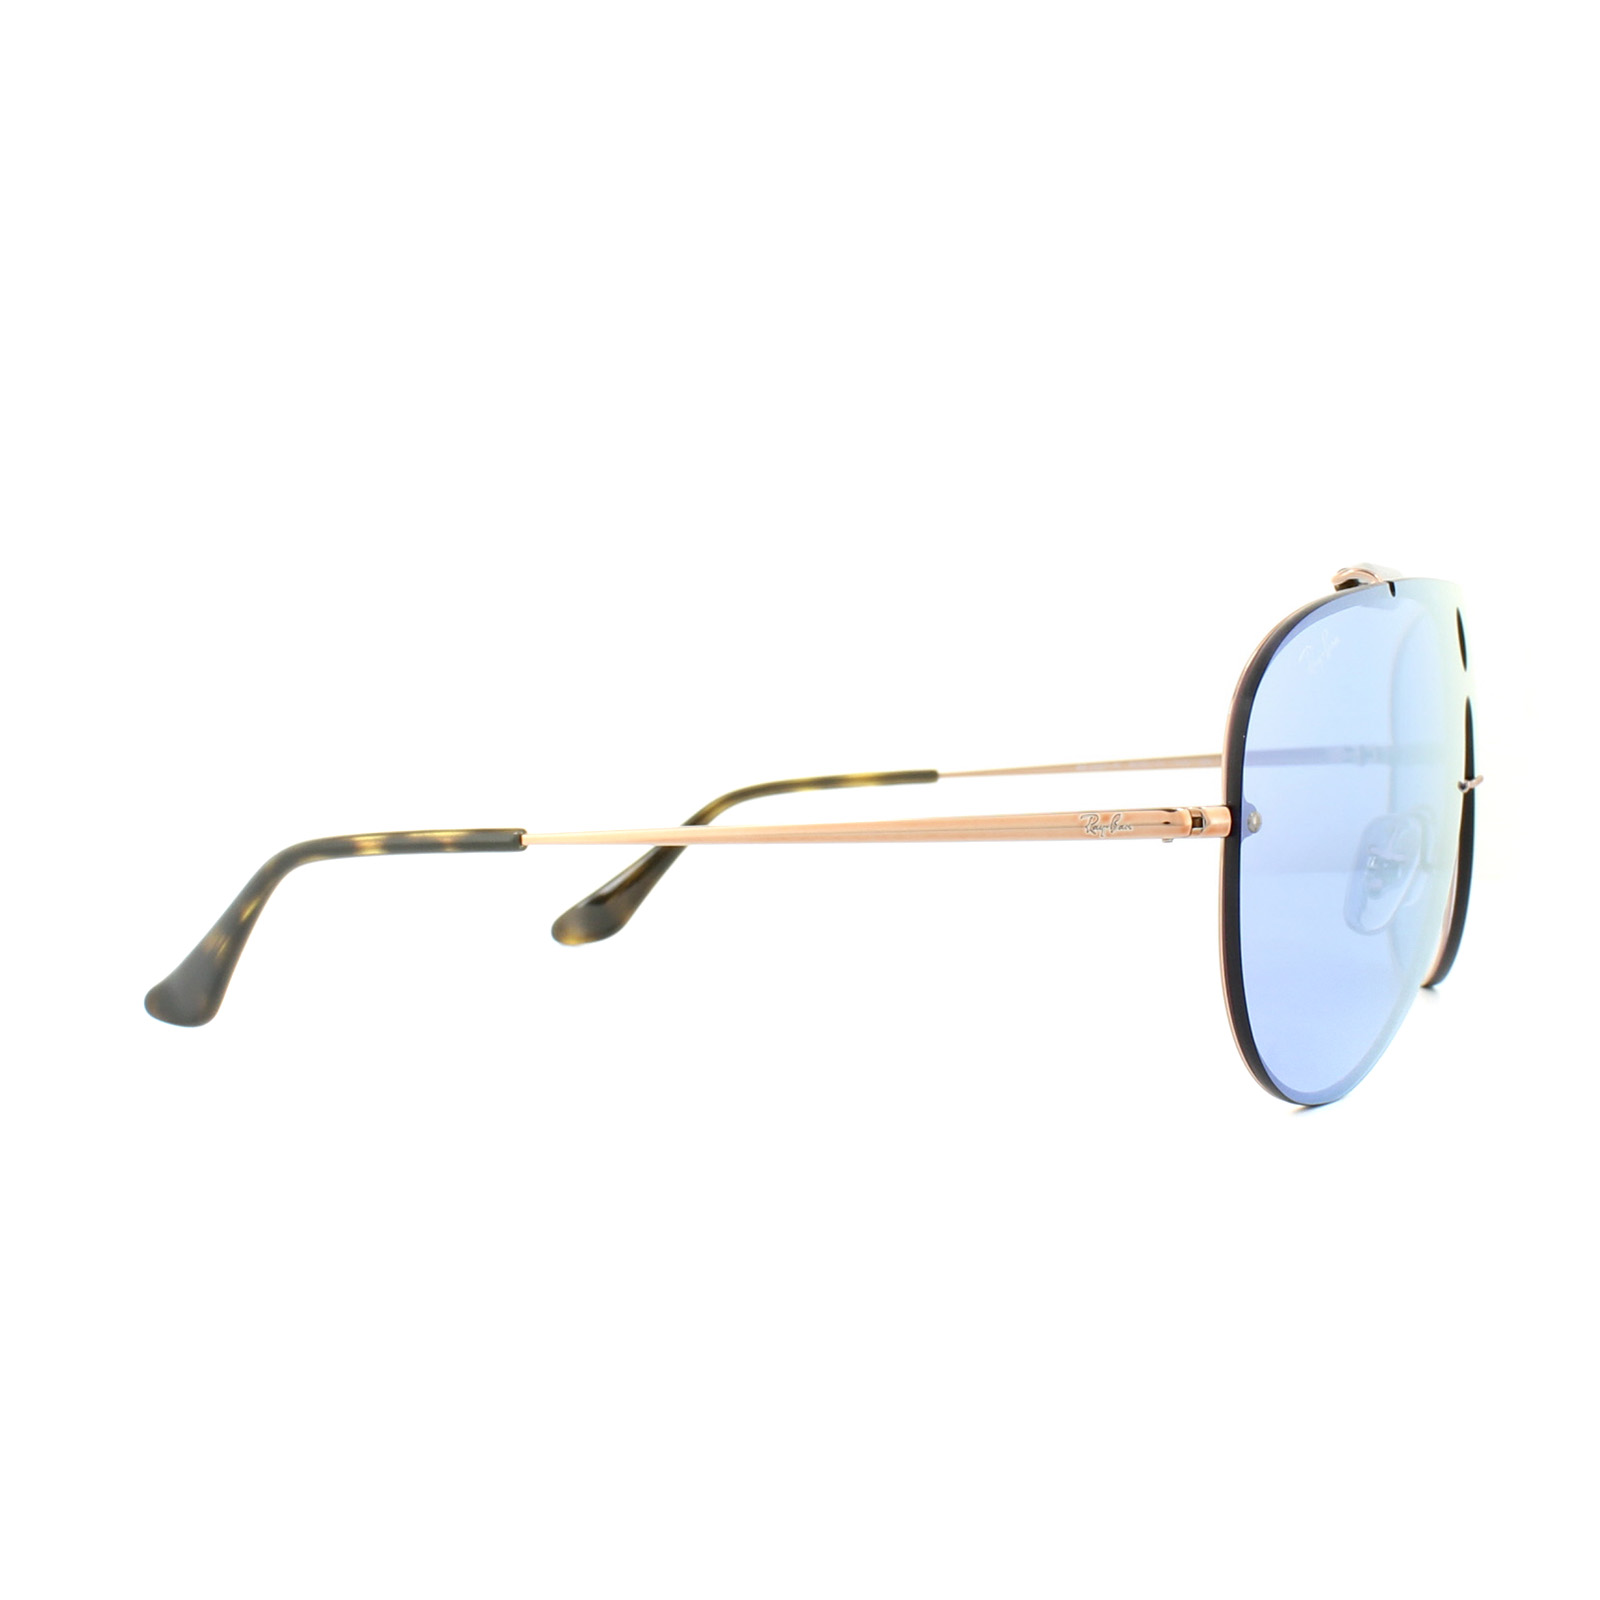 bfb3d3be71a Sentinel Ray-Ban Sunglasses Blaze Shooter 3581N 90351U Bronze Copper Violet  Silver Mirror